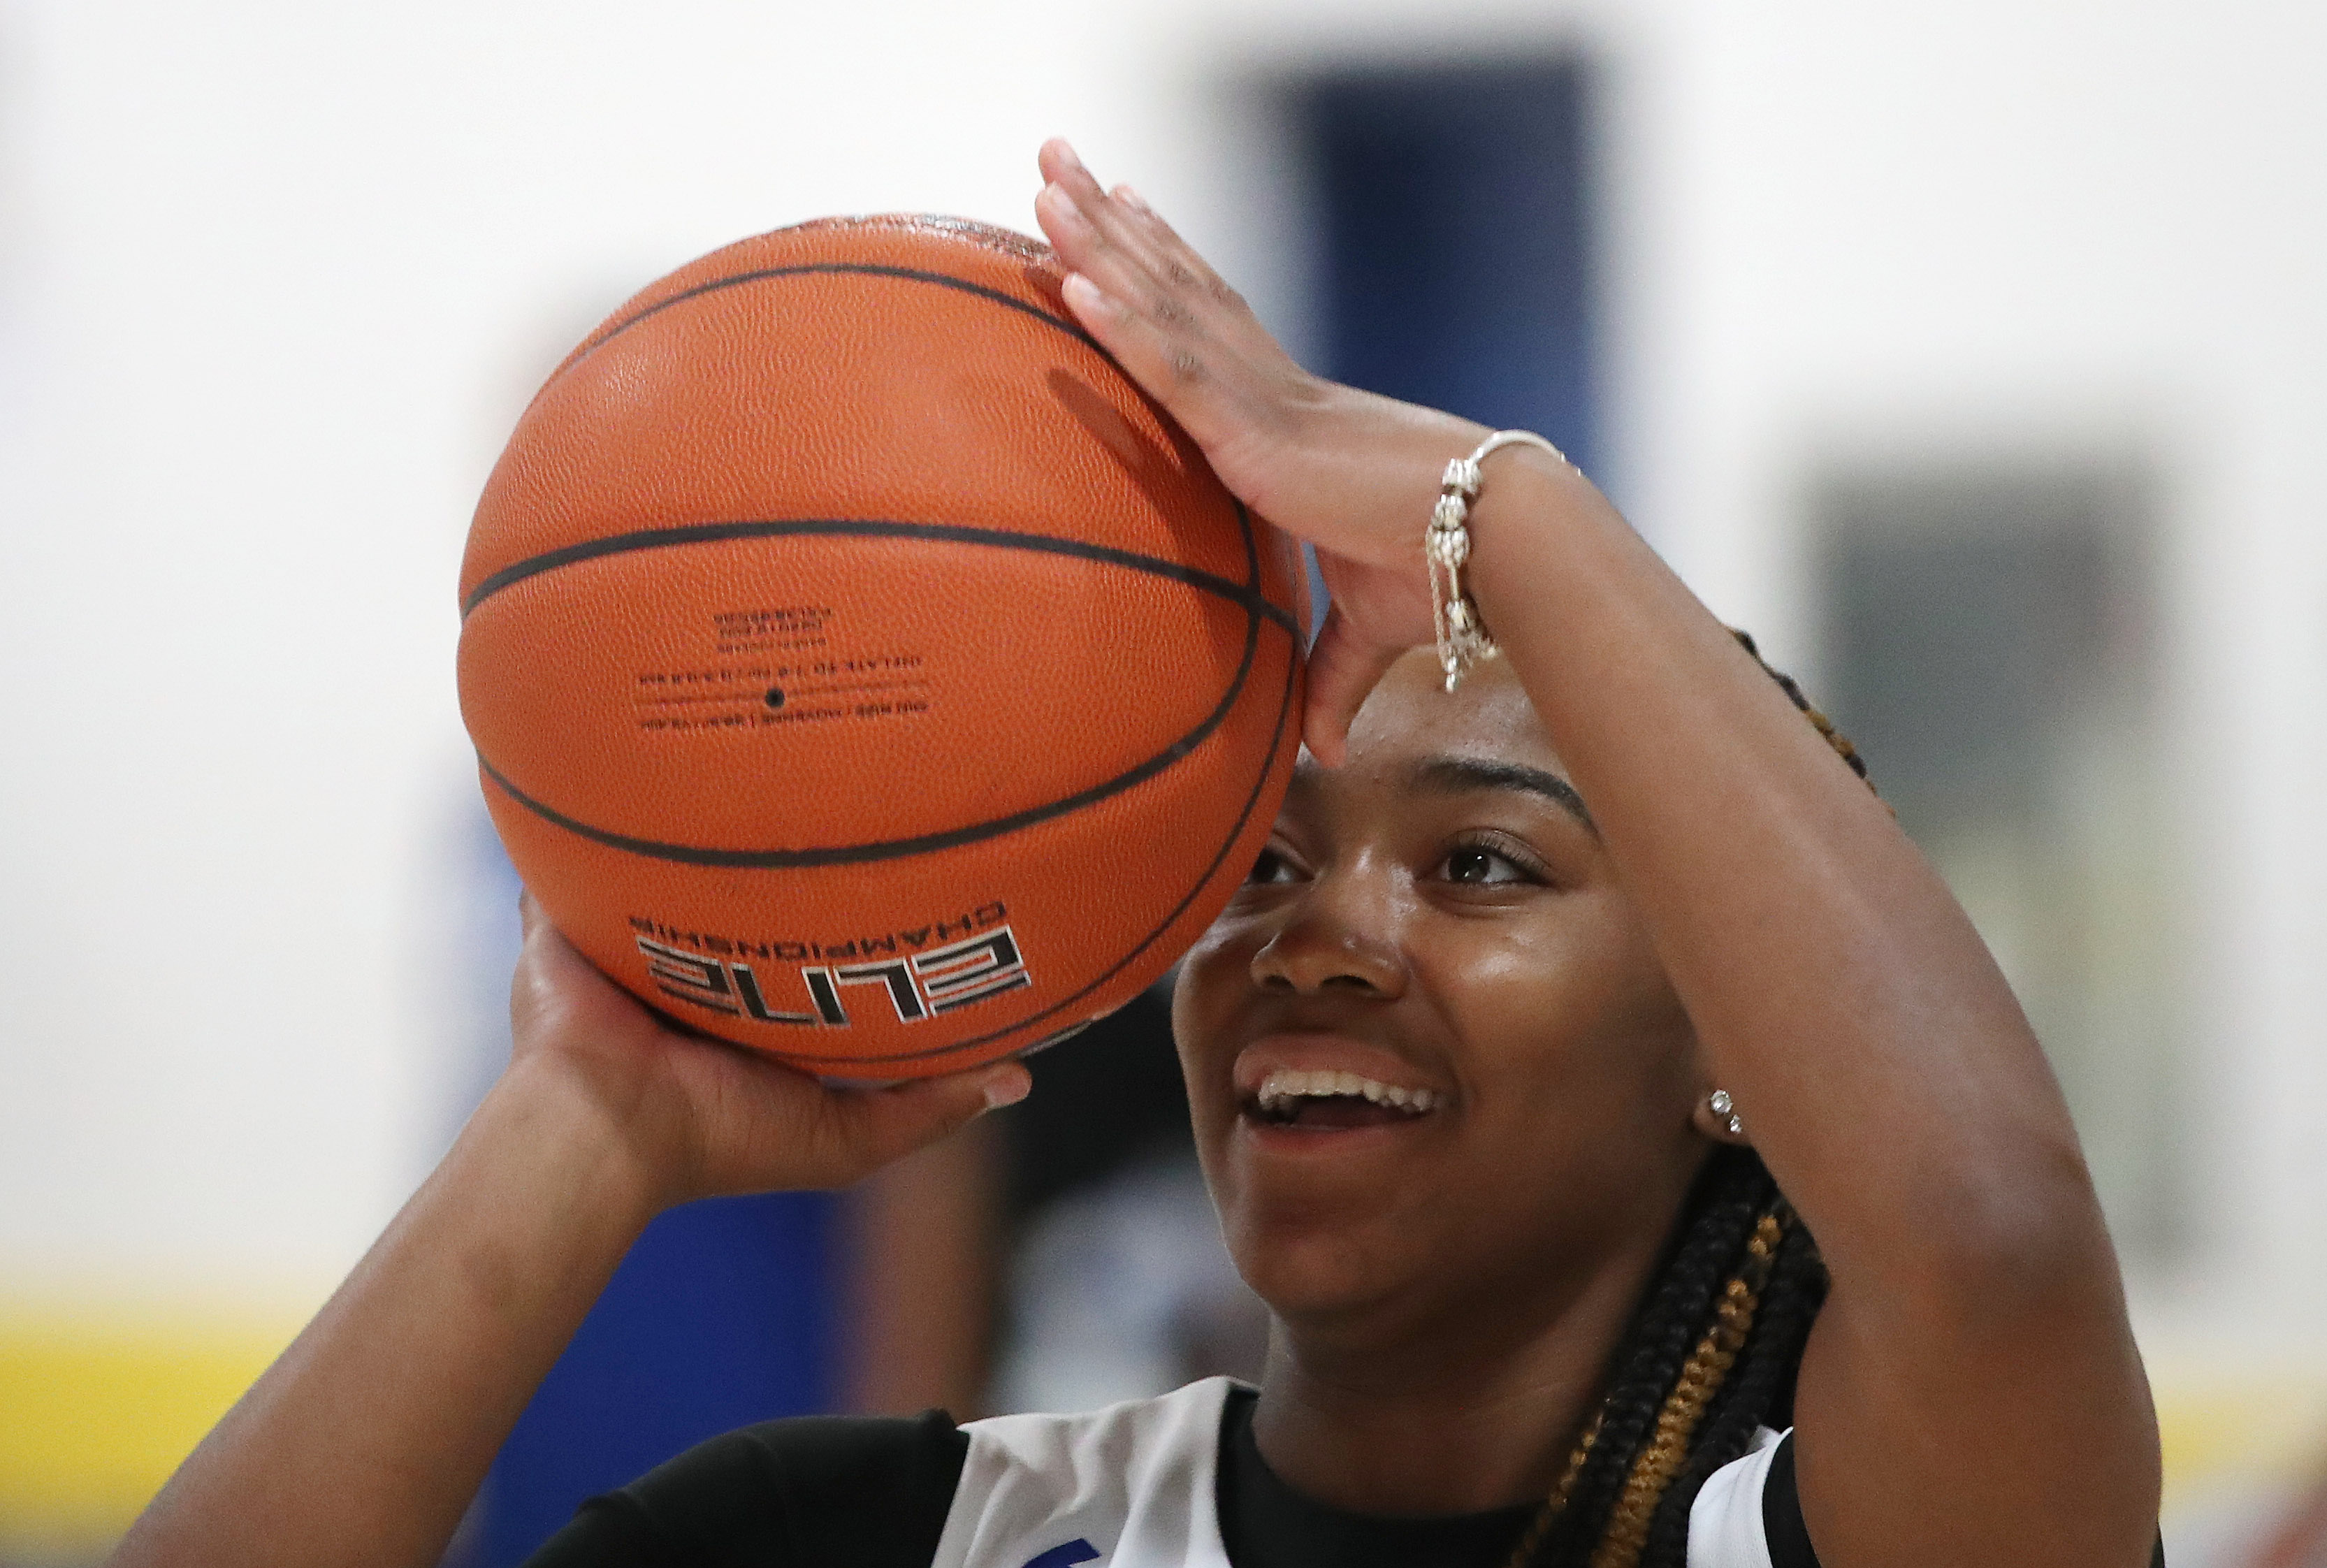 An elite girls basketball team at Royal Crown Academic School is attempting to build a power squad to make a run at all the prestigious U.S. tournaments and have apparently attracted a film company to document their season for a Netflix piece. The team fea